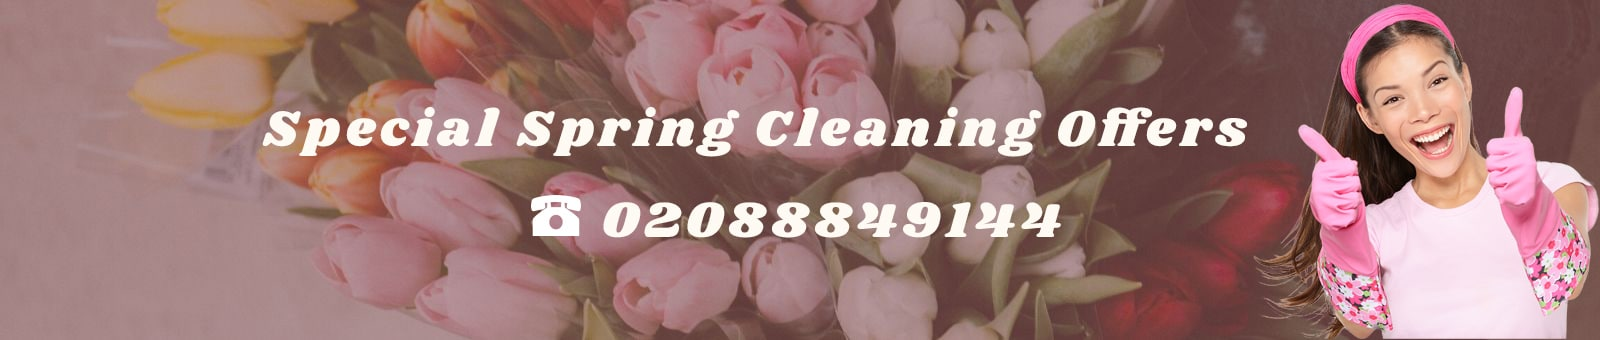 Millag5 Spring Cleaning Offers